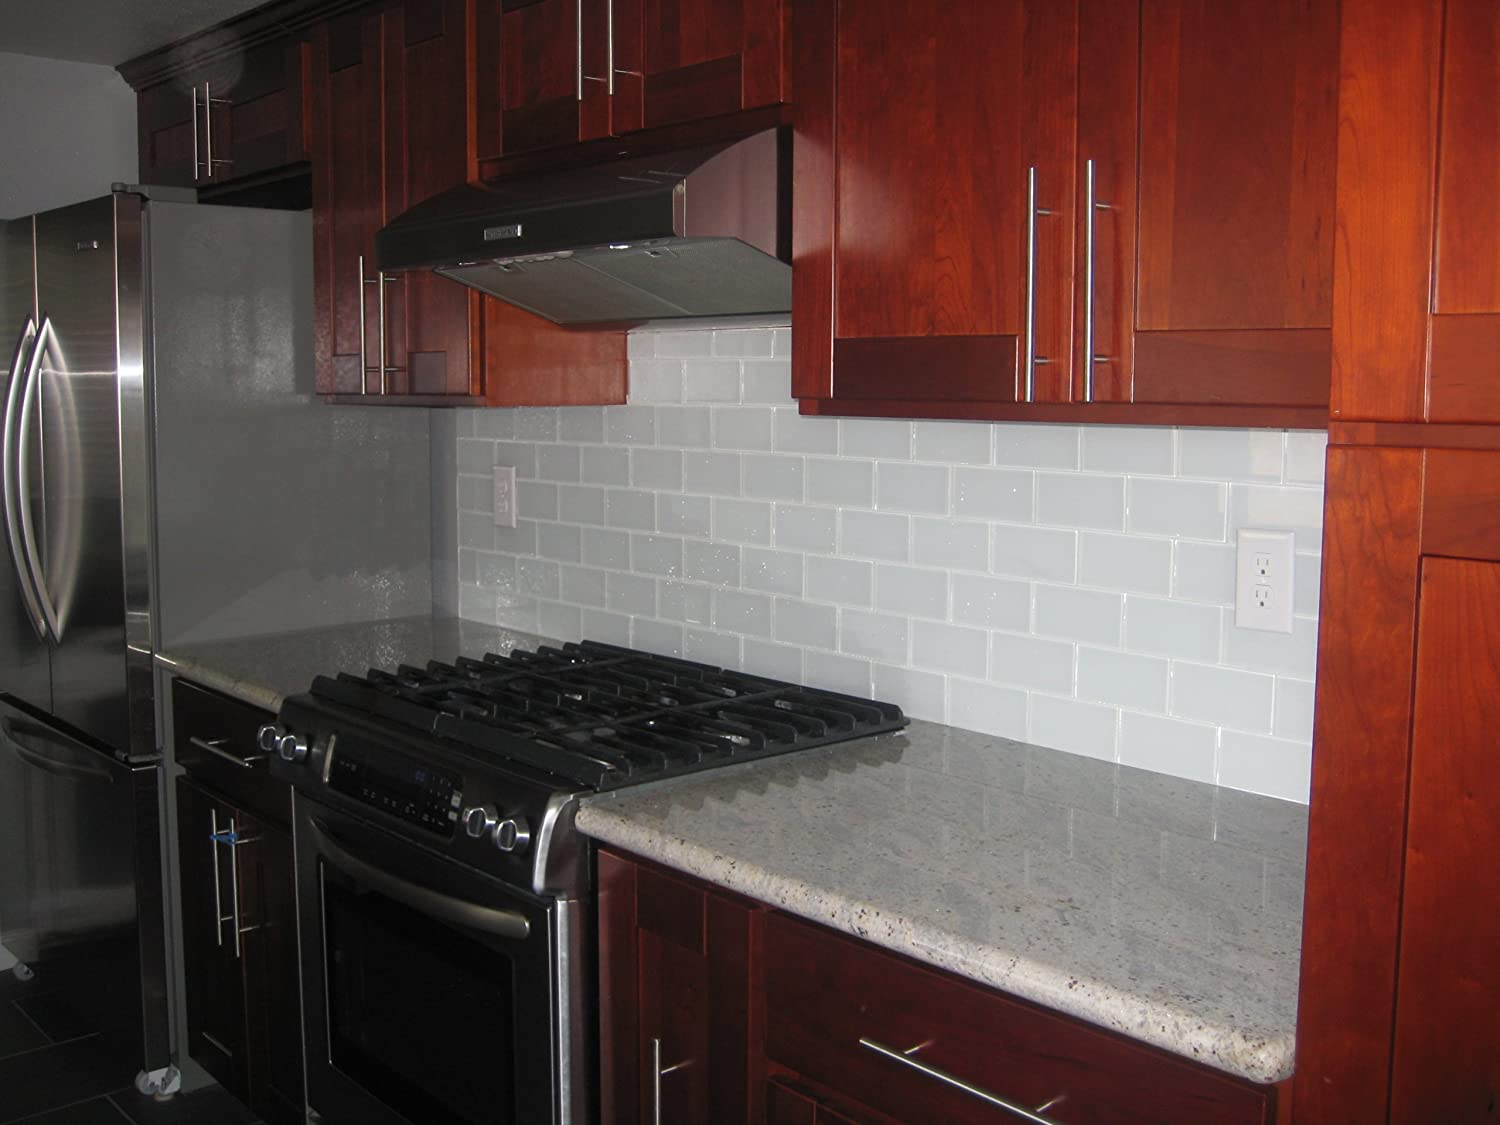 Red subway tile backsplash - Red Subway Tile Backsplash 29